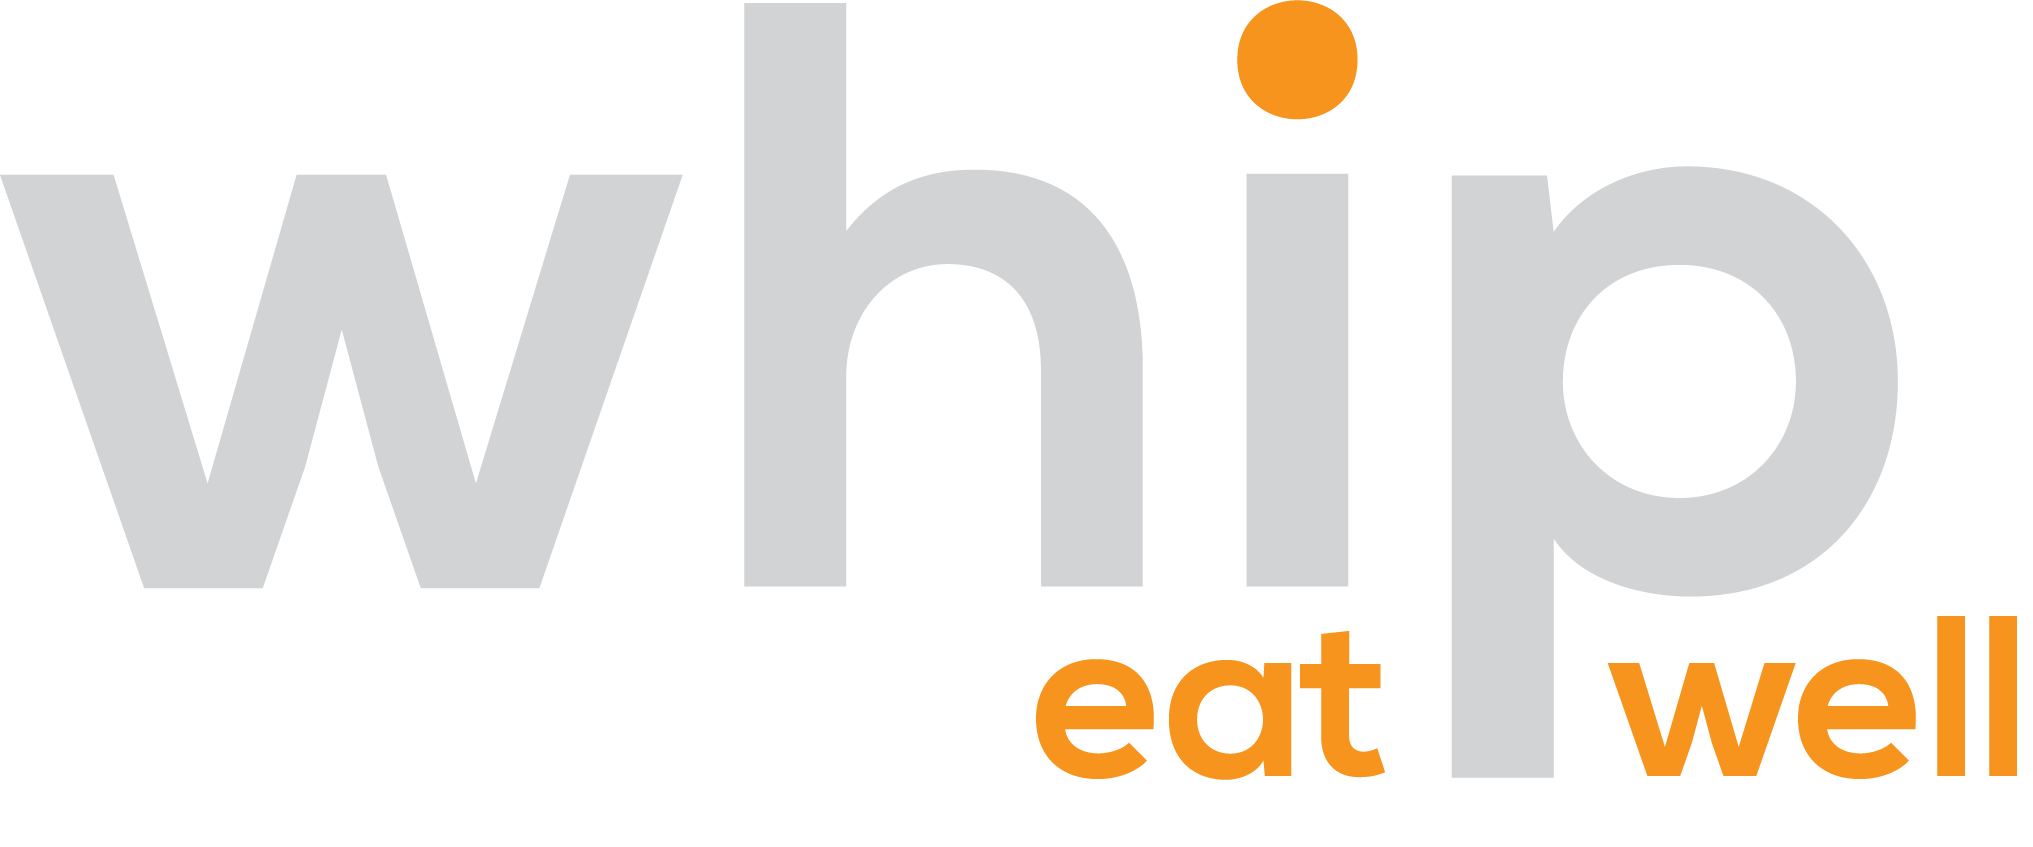 Whip_logo_color_3.png